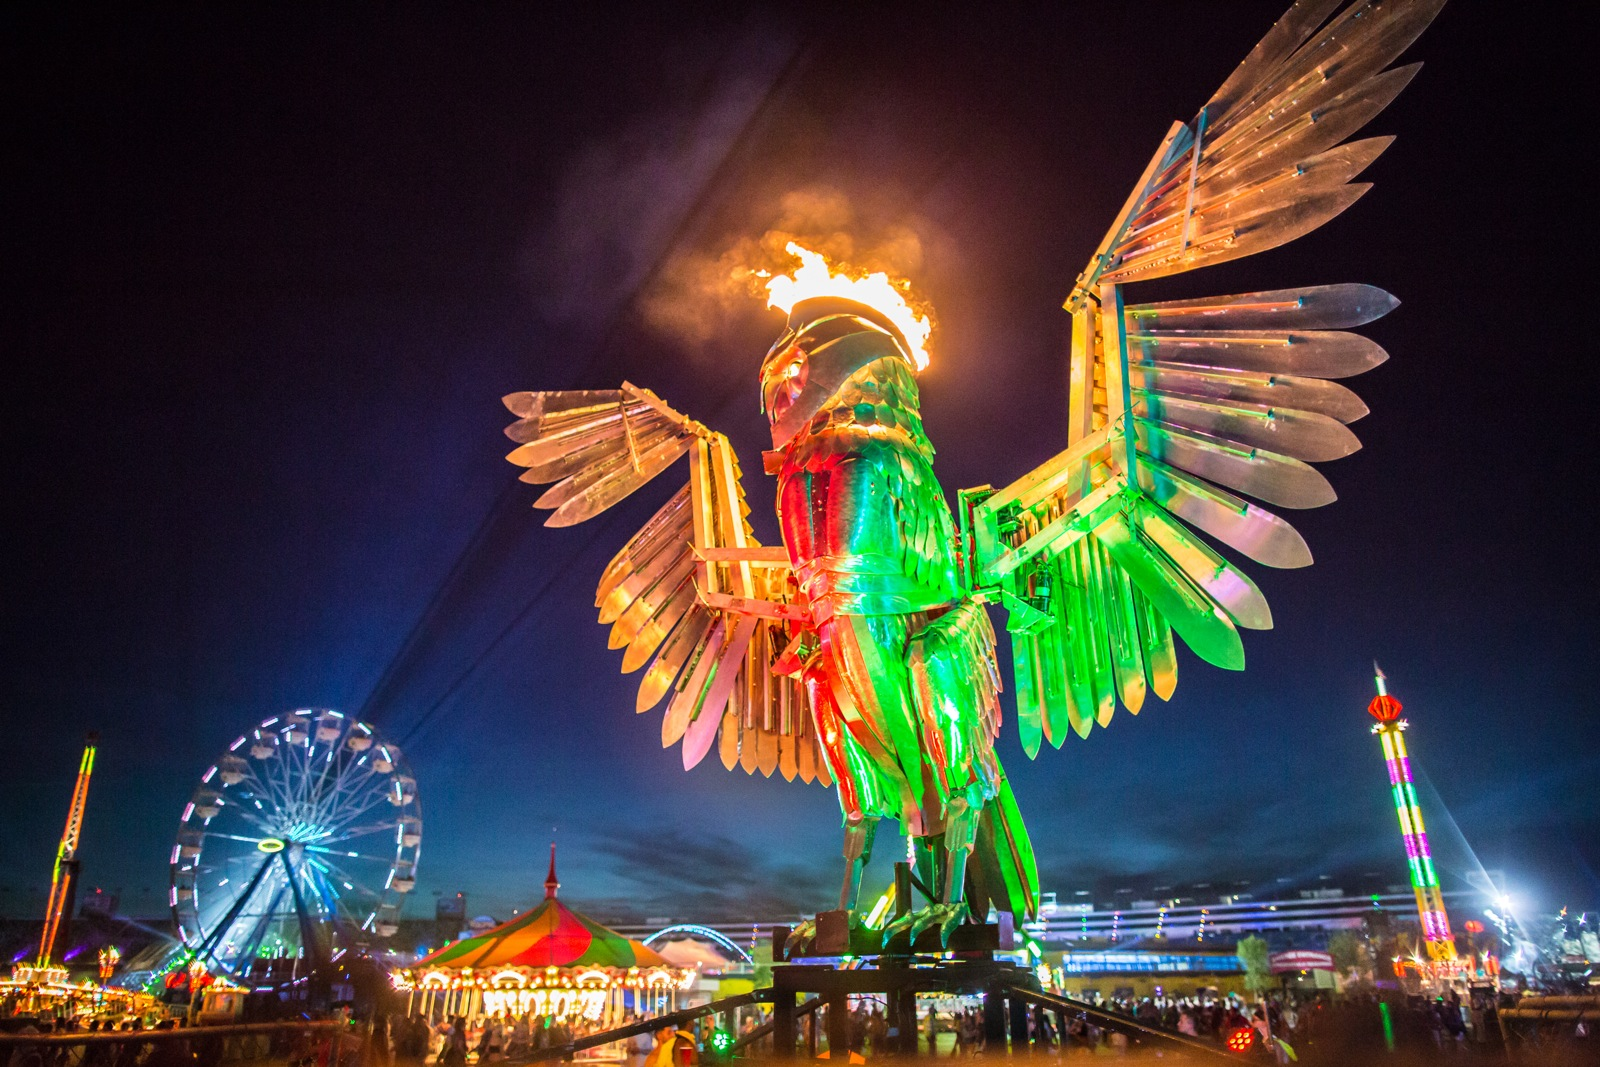 Electric Daisy Carnival 2014 Official A Live For Insomniac 1